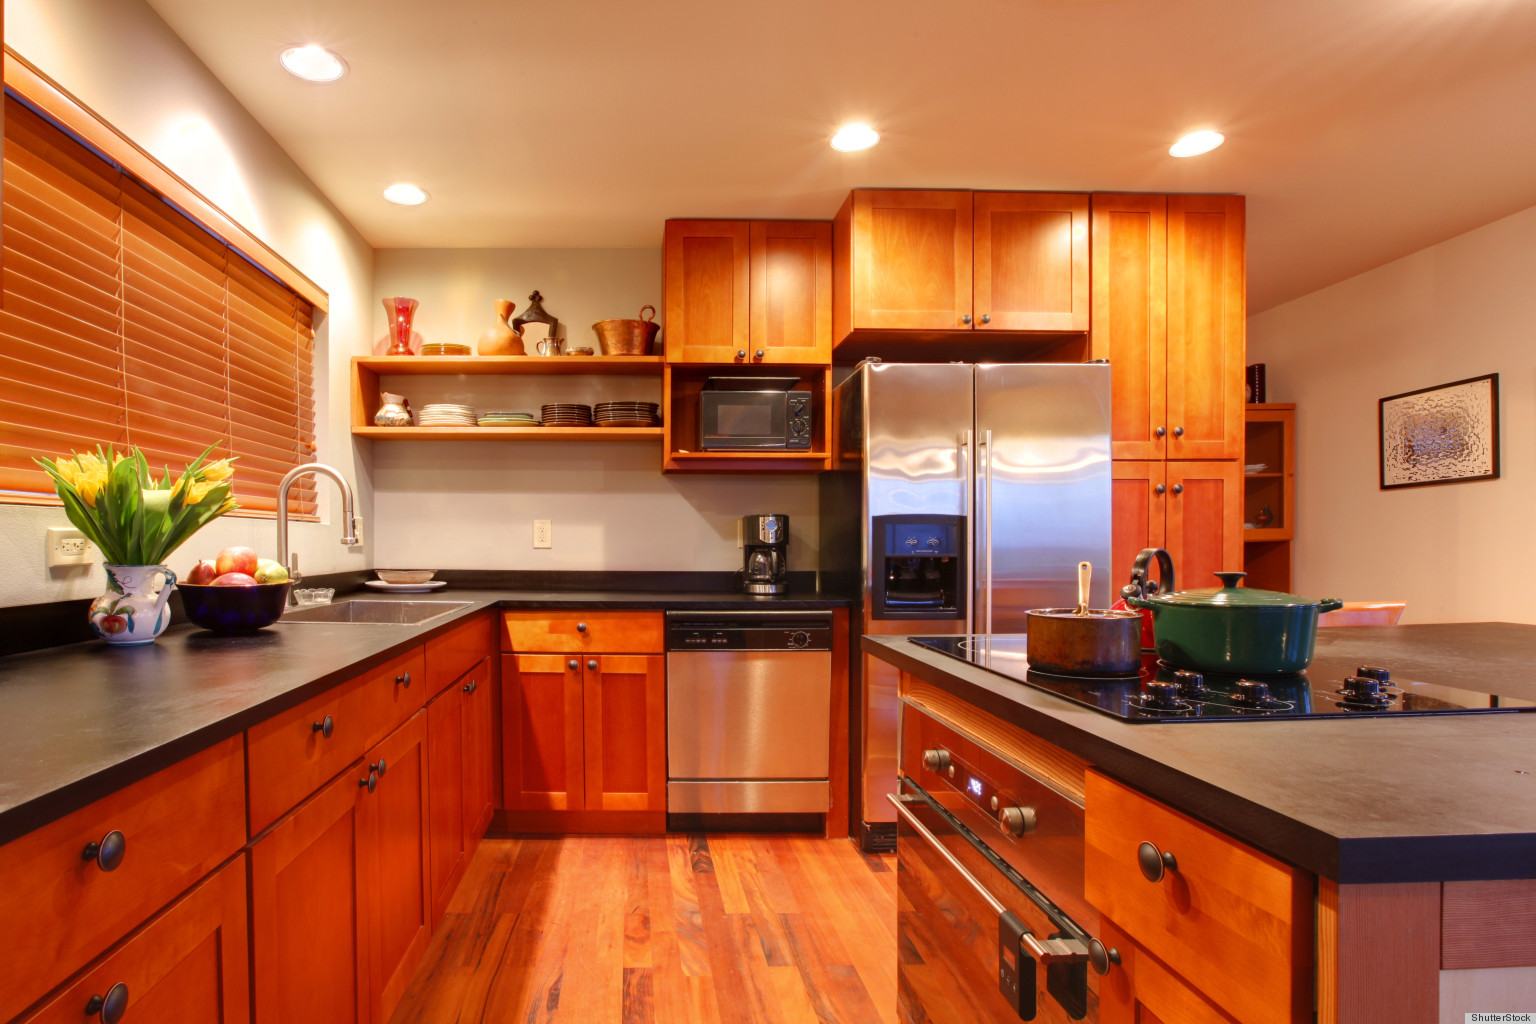 Kitchen Ceiling Clean Your Kitchen Ceiling To Remove Cooking Grime Huffpost